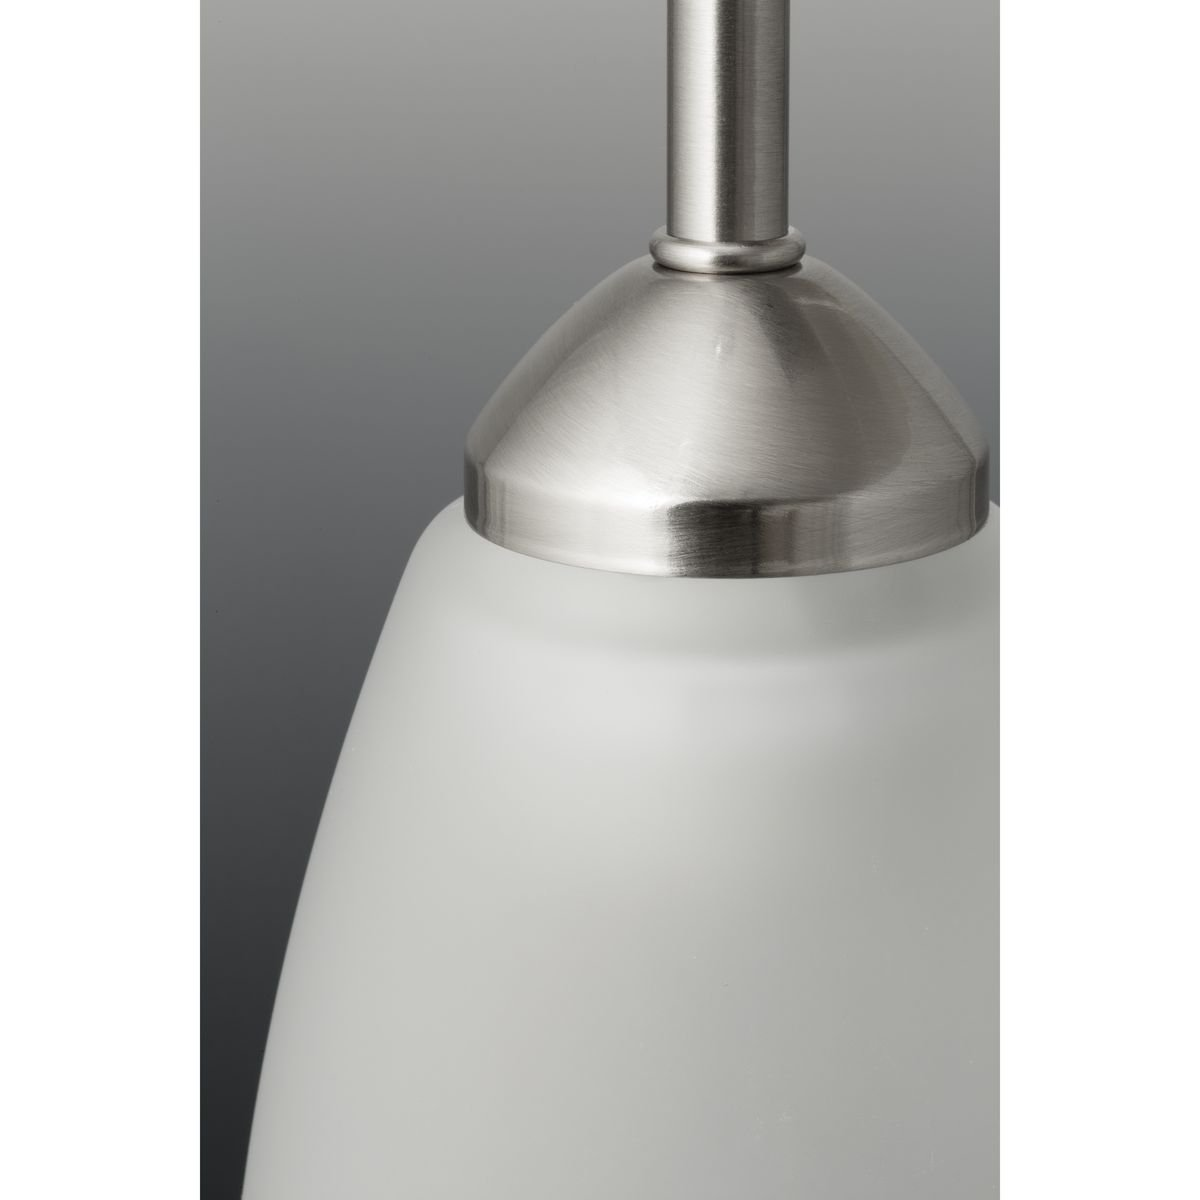 Progress Lighting P2714-09 Gather Collection 6-Light Vanity Fixture, Brushed Nickel by Progress Lighting